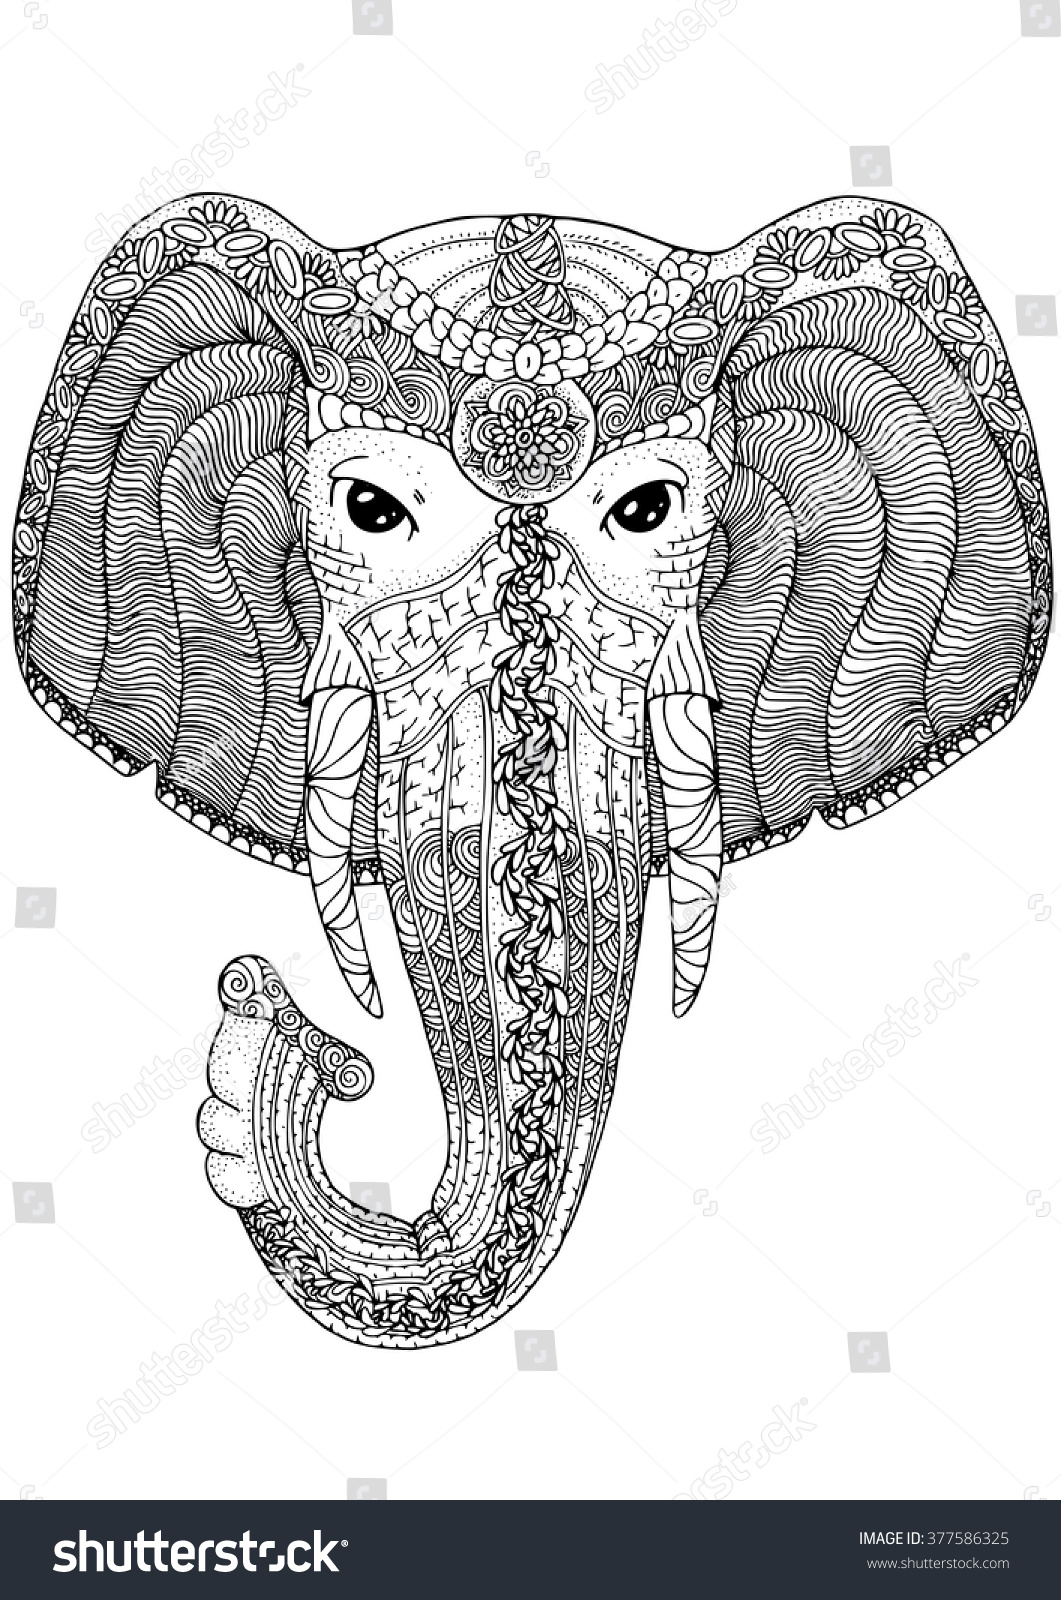 Zentangle Ornamental Elephant Adult Coloring Pages Hand